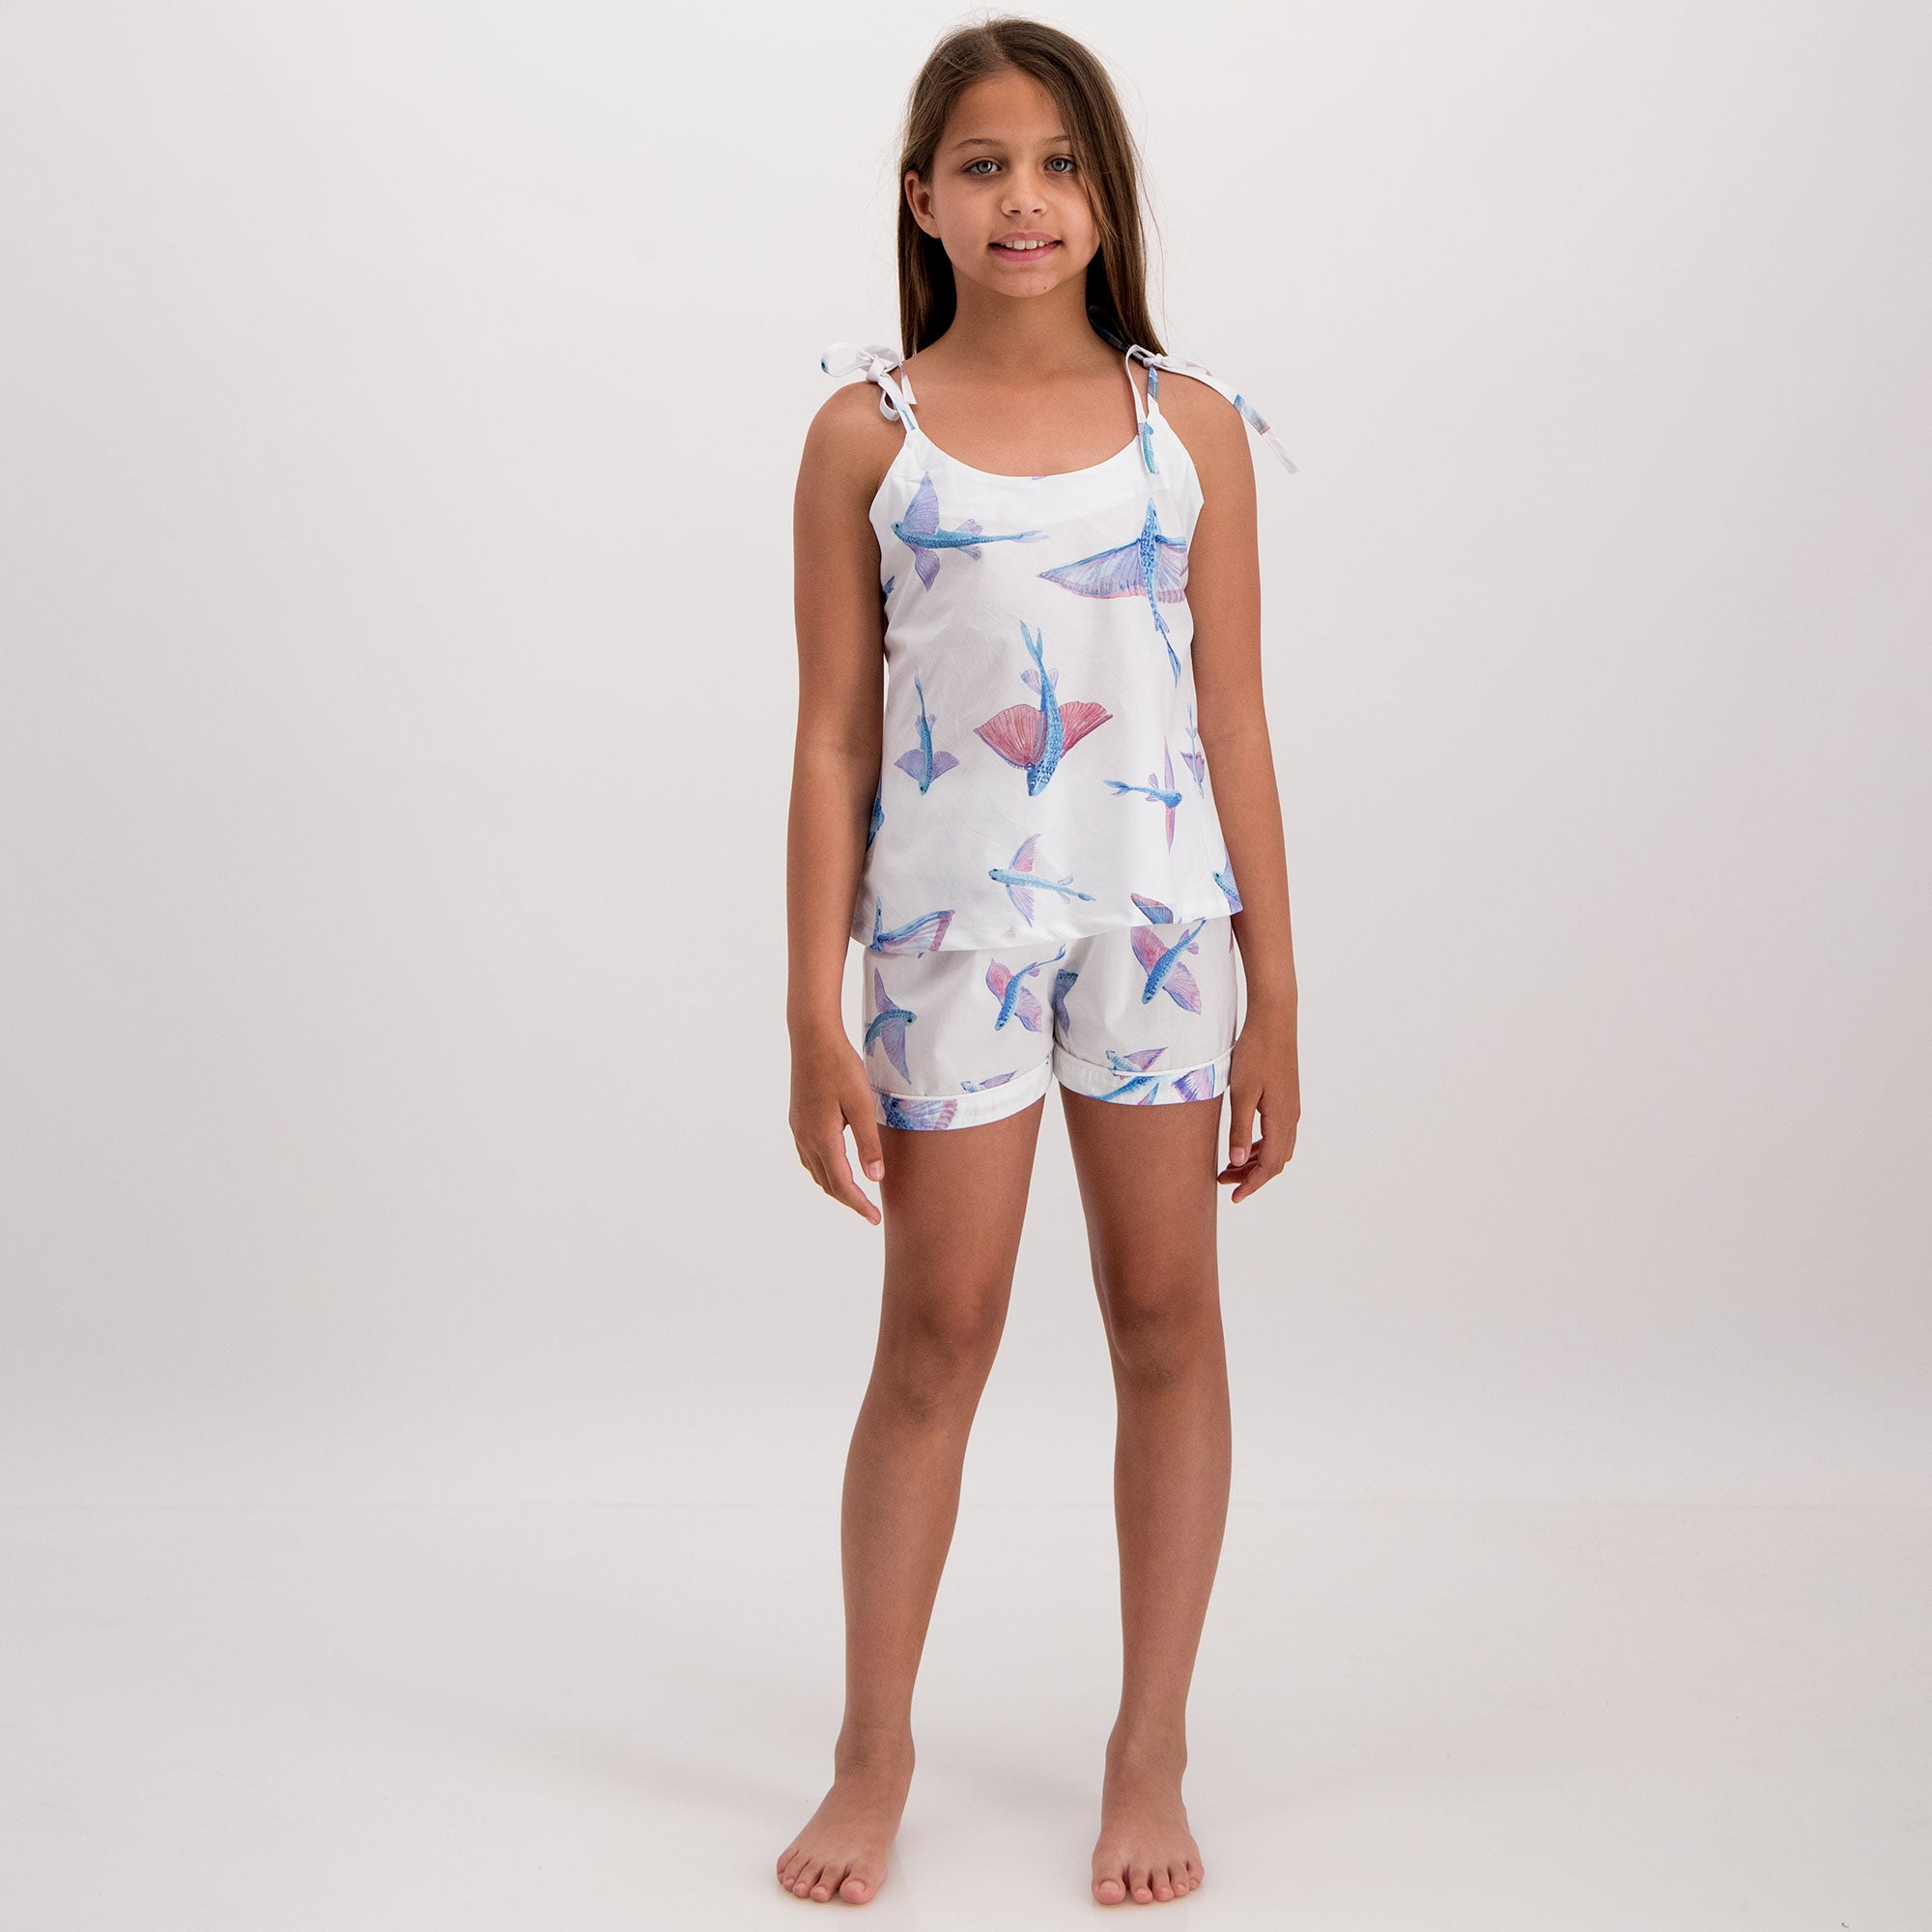 Girls Camisole Pyjamas Flying Fish White - Woodstock Laundry